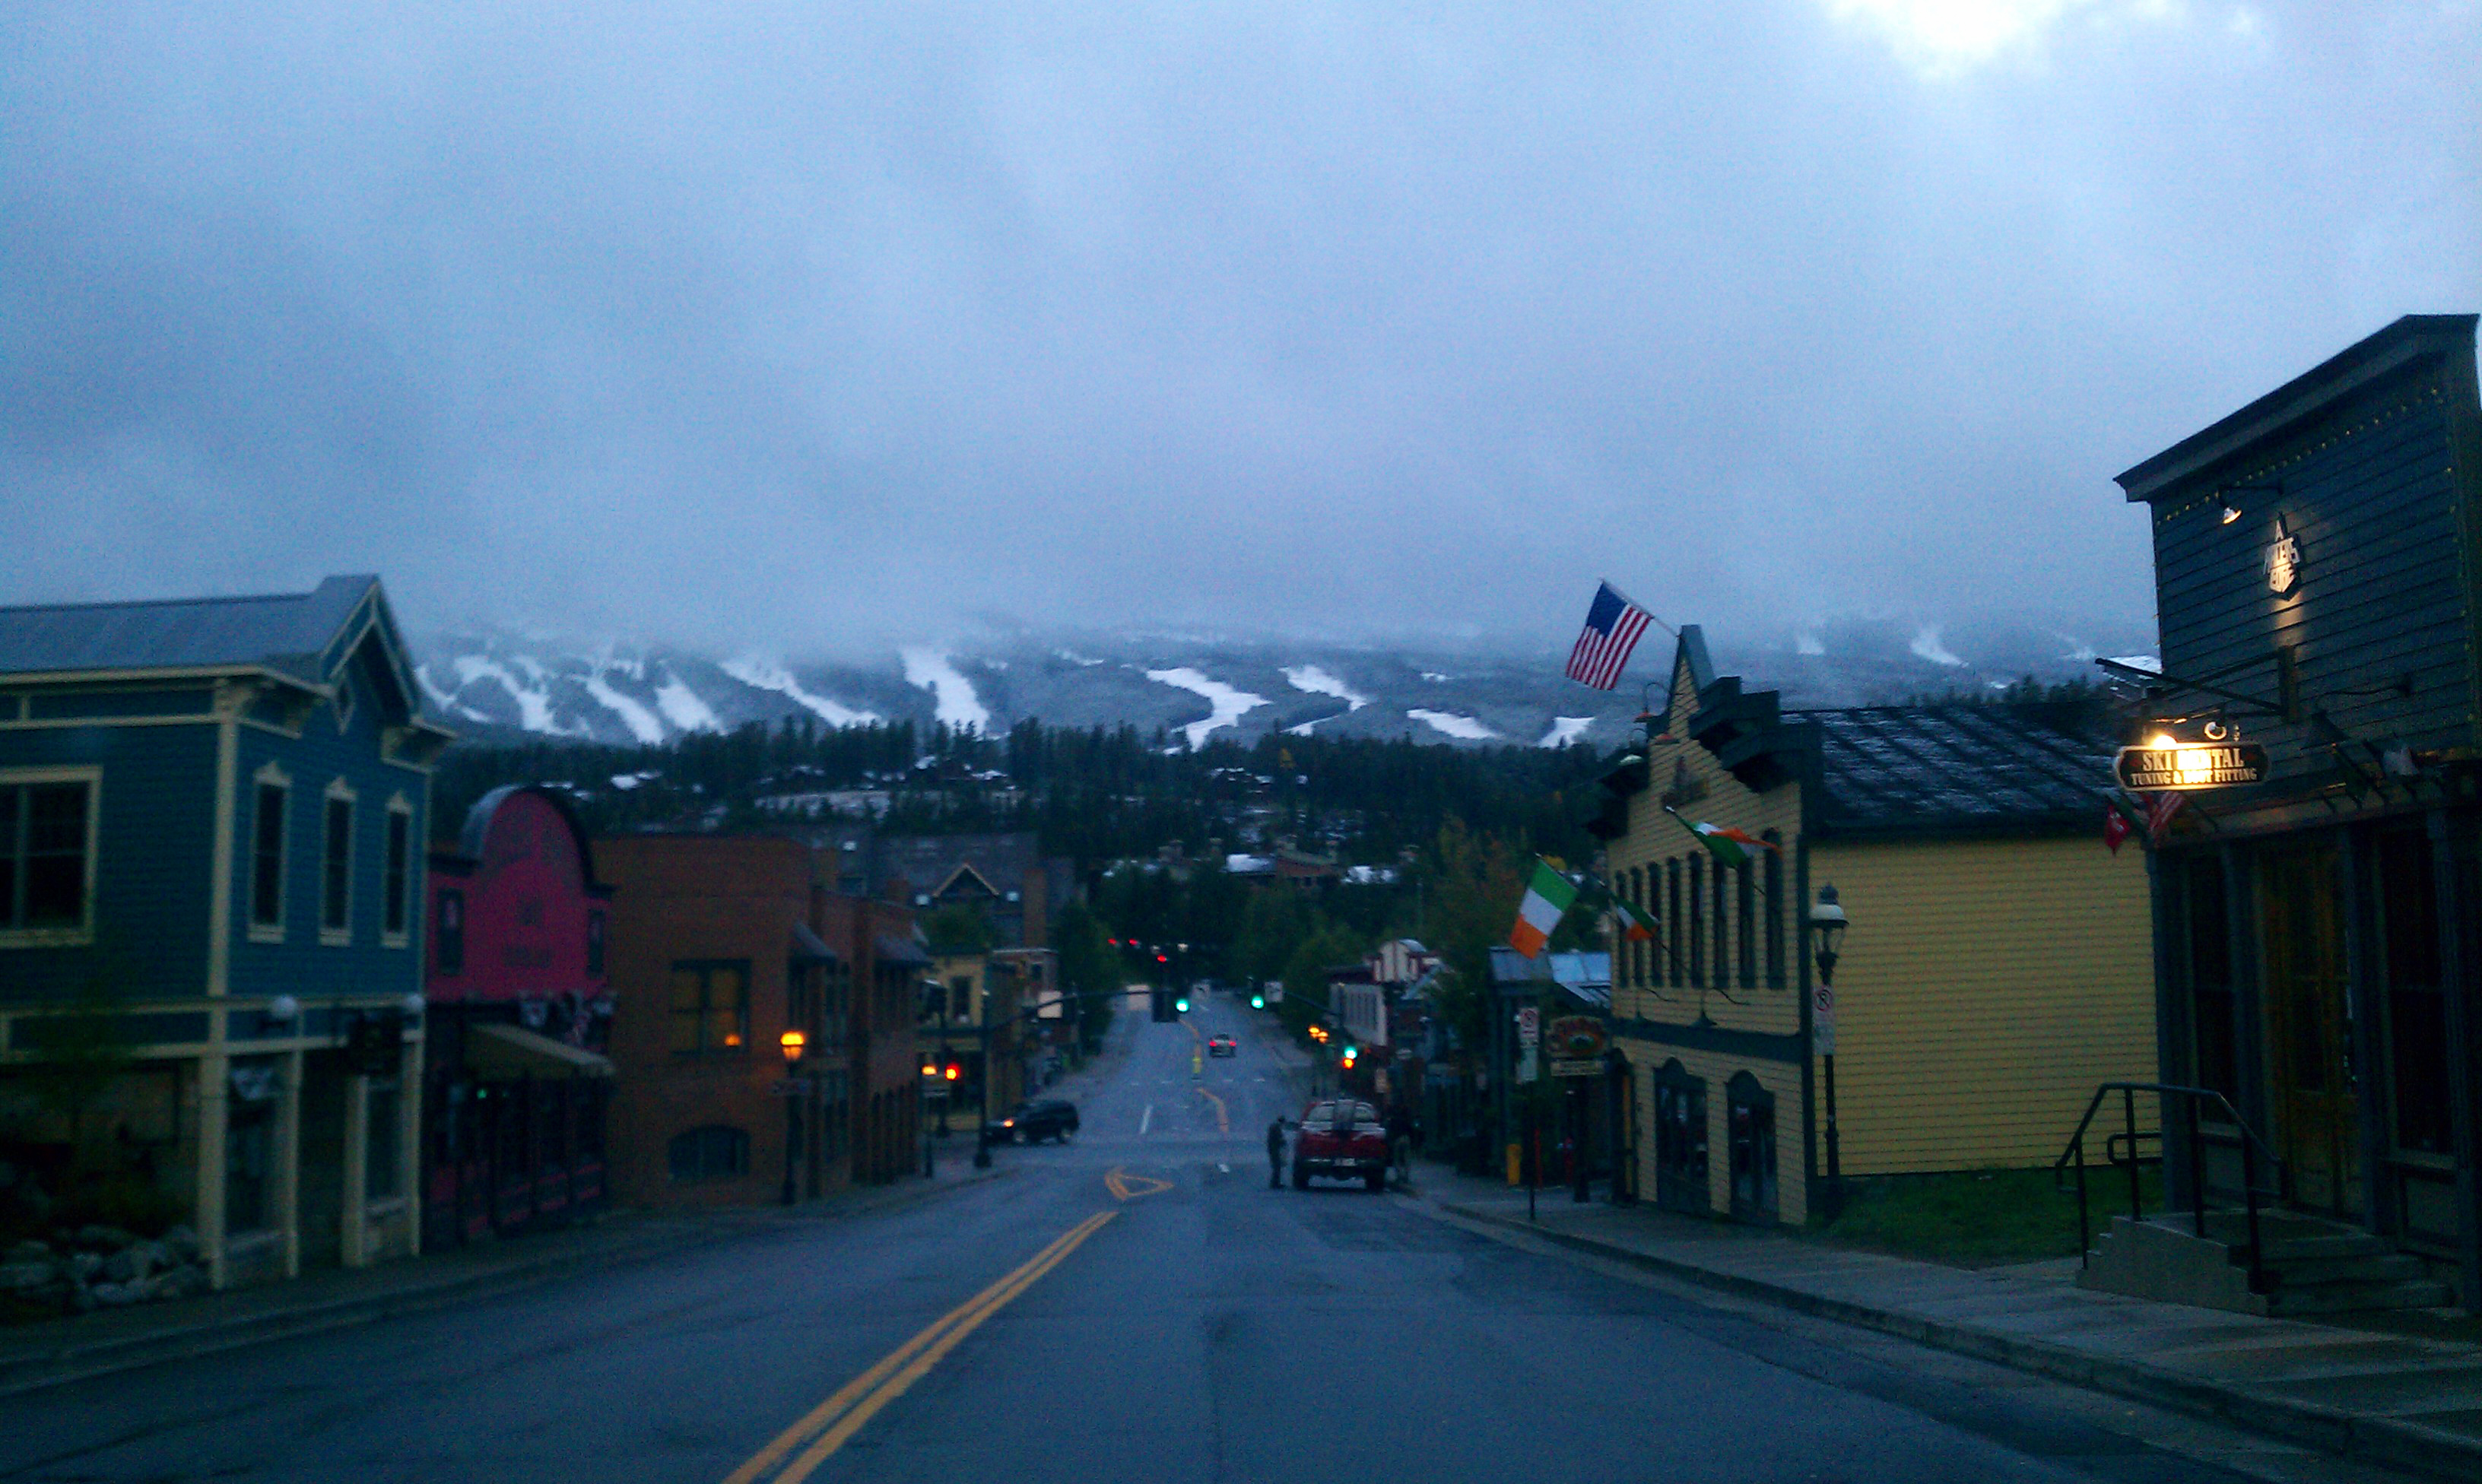 Main St. in the morning